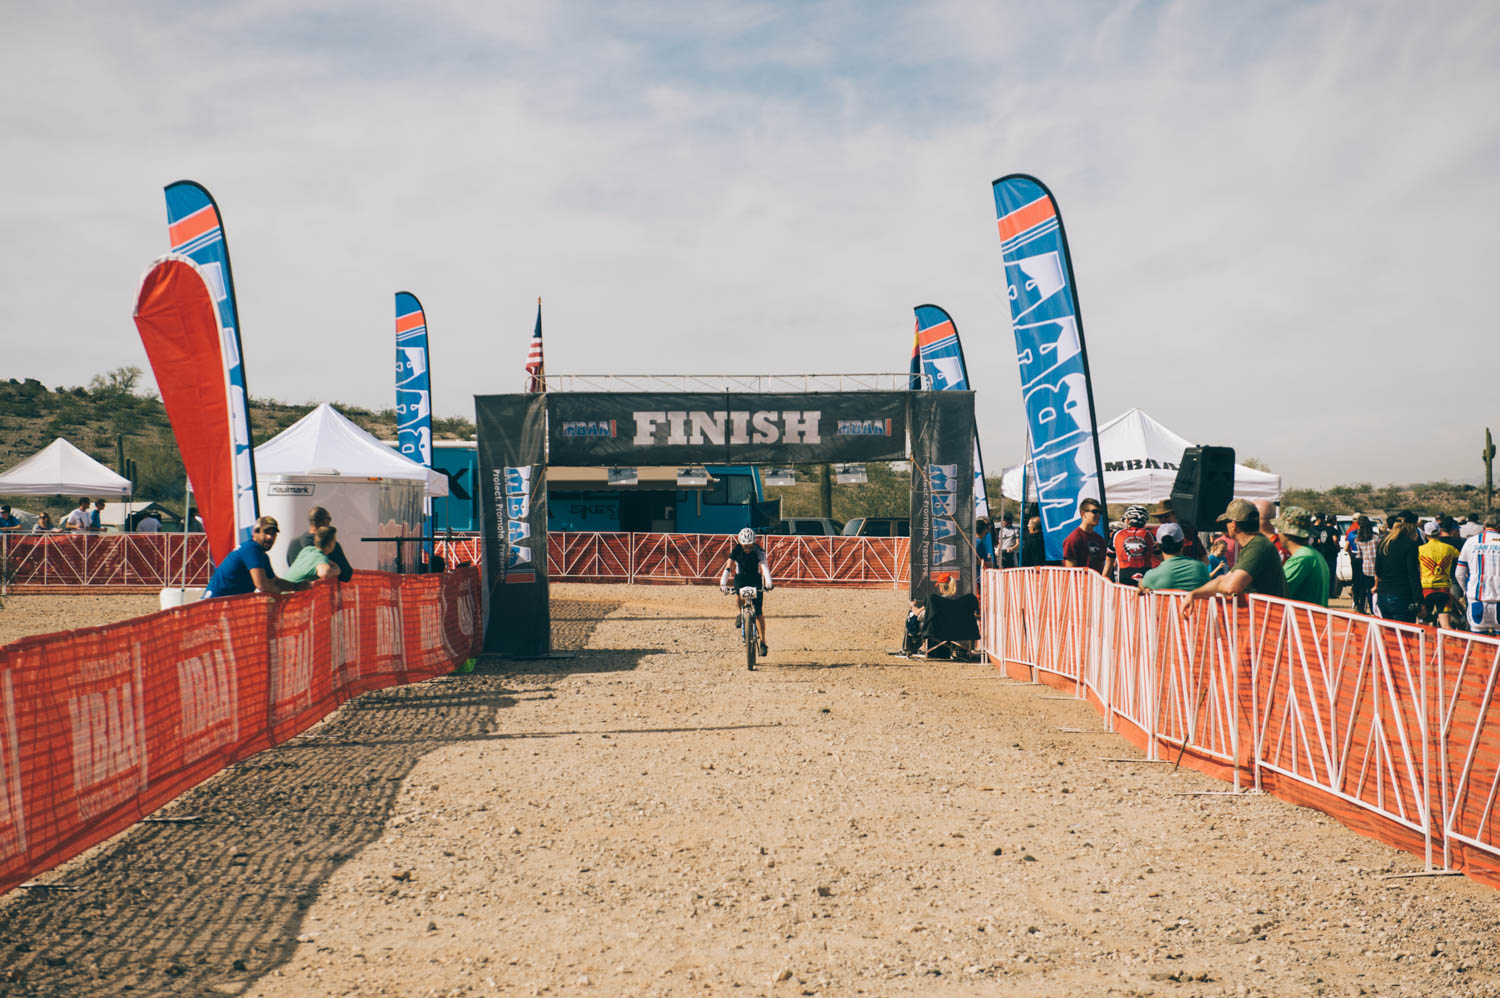 Diedra at the Finish! 8th position even if she lost 3 min putting her chain back on. You rock, girl!